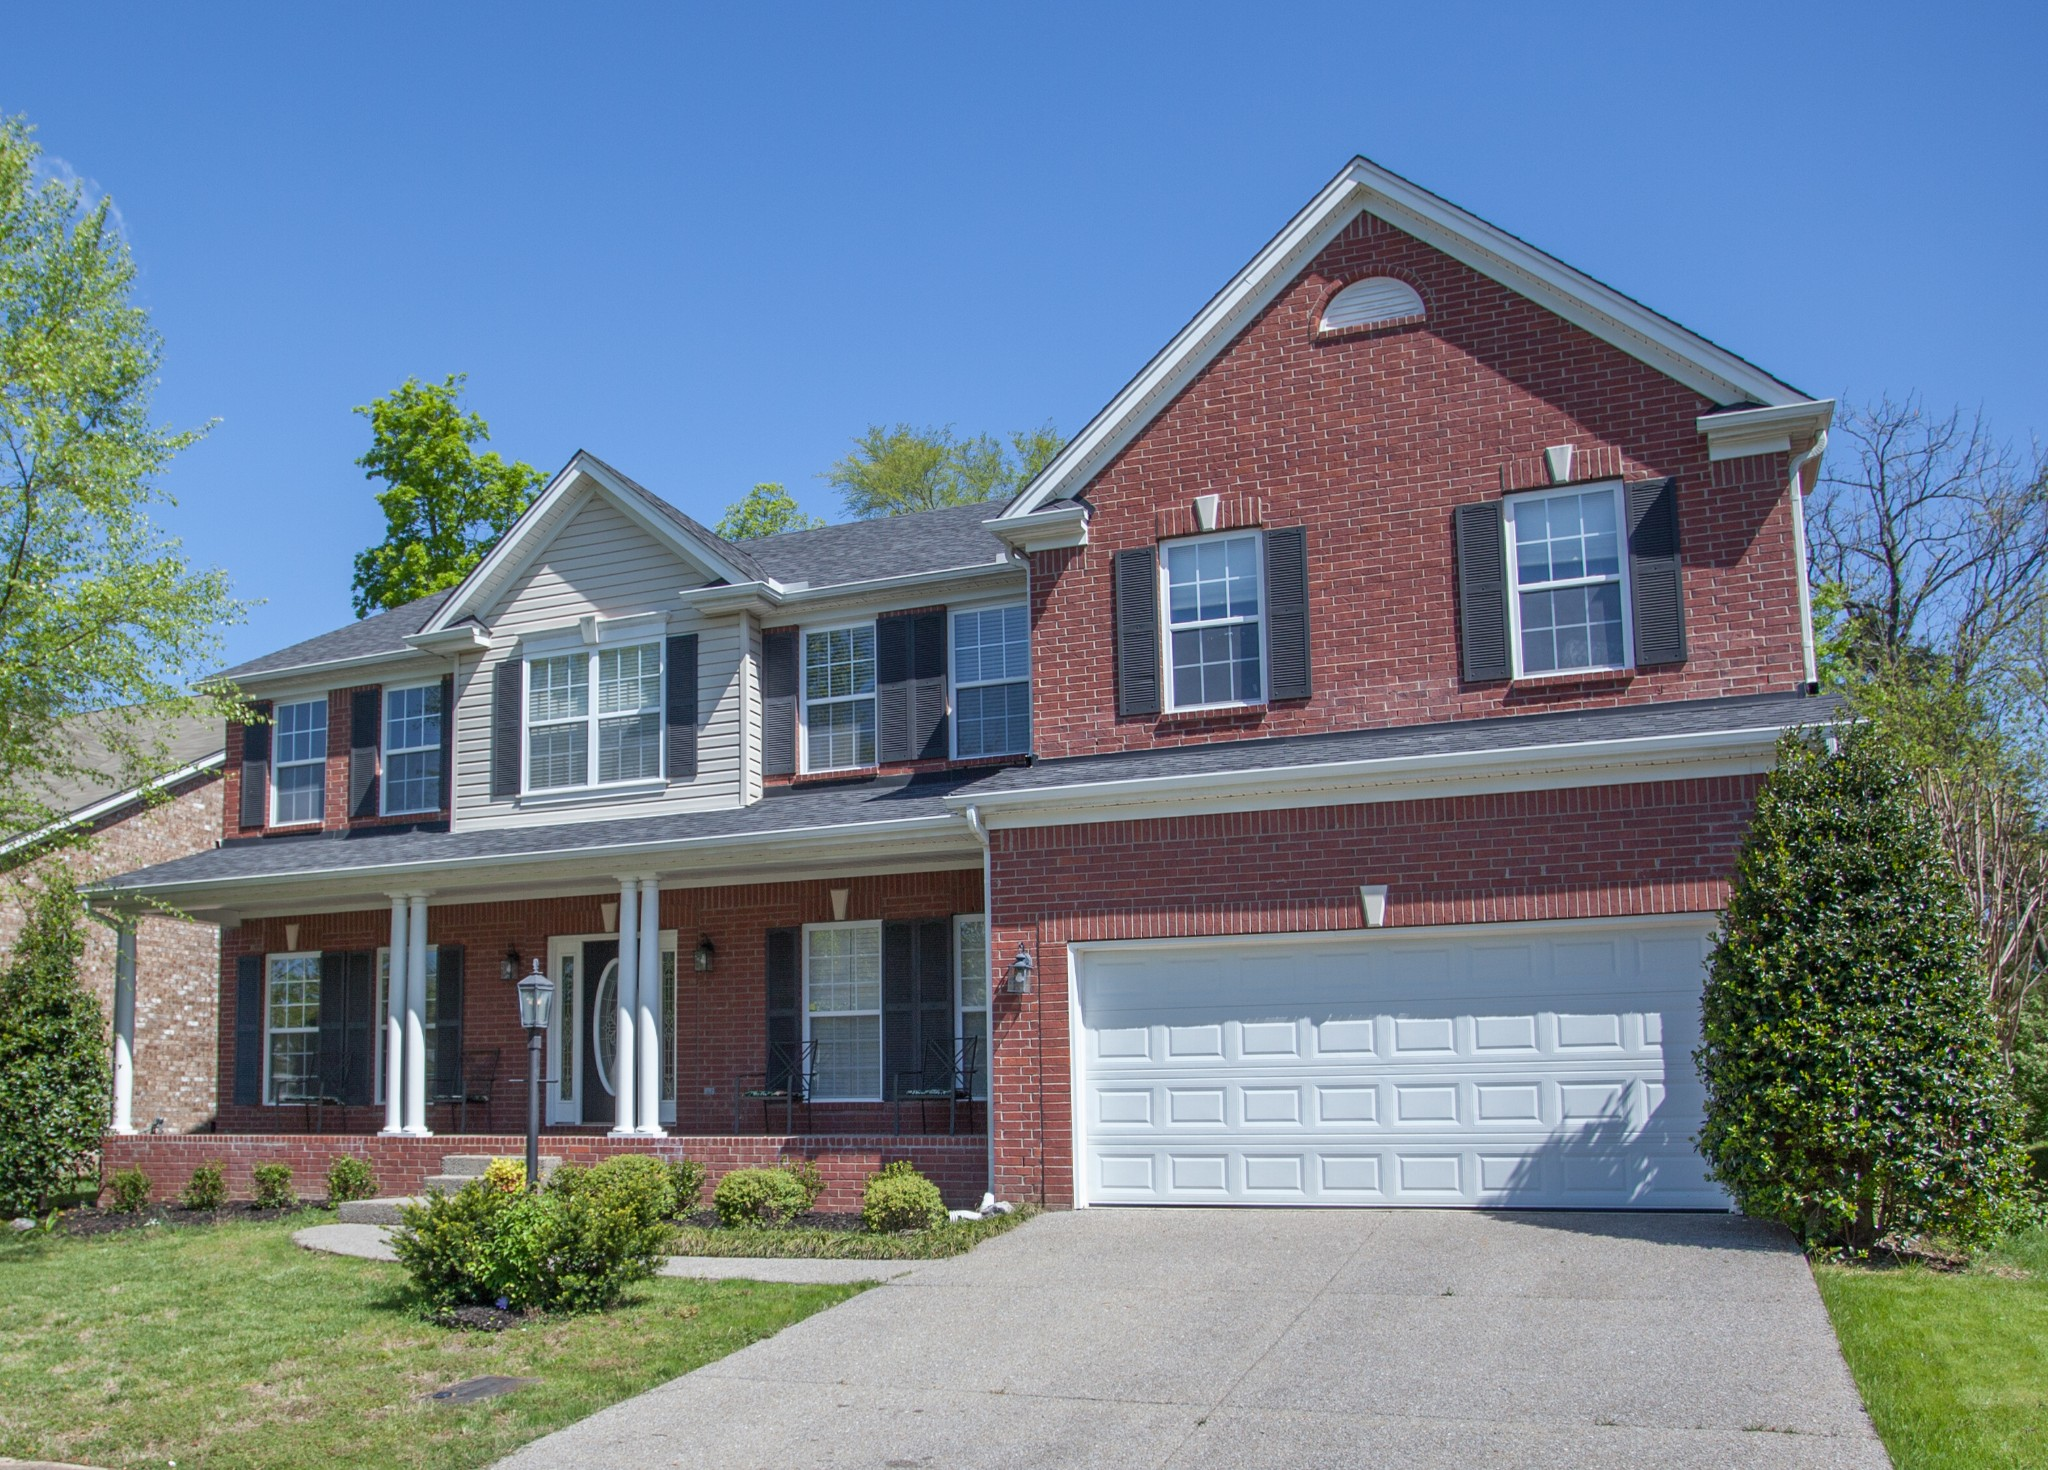 2005 Hawks Nest Dr, Hermitage, Tennessee